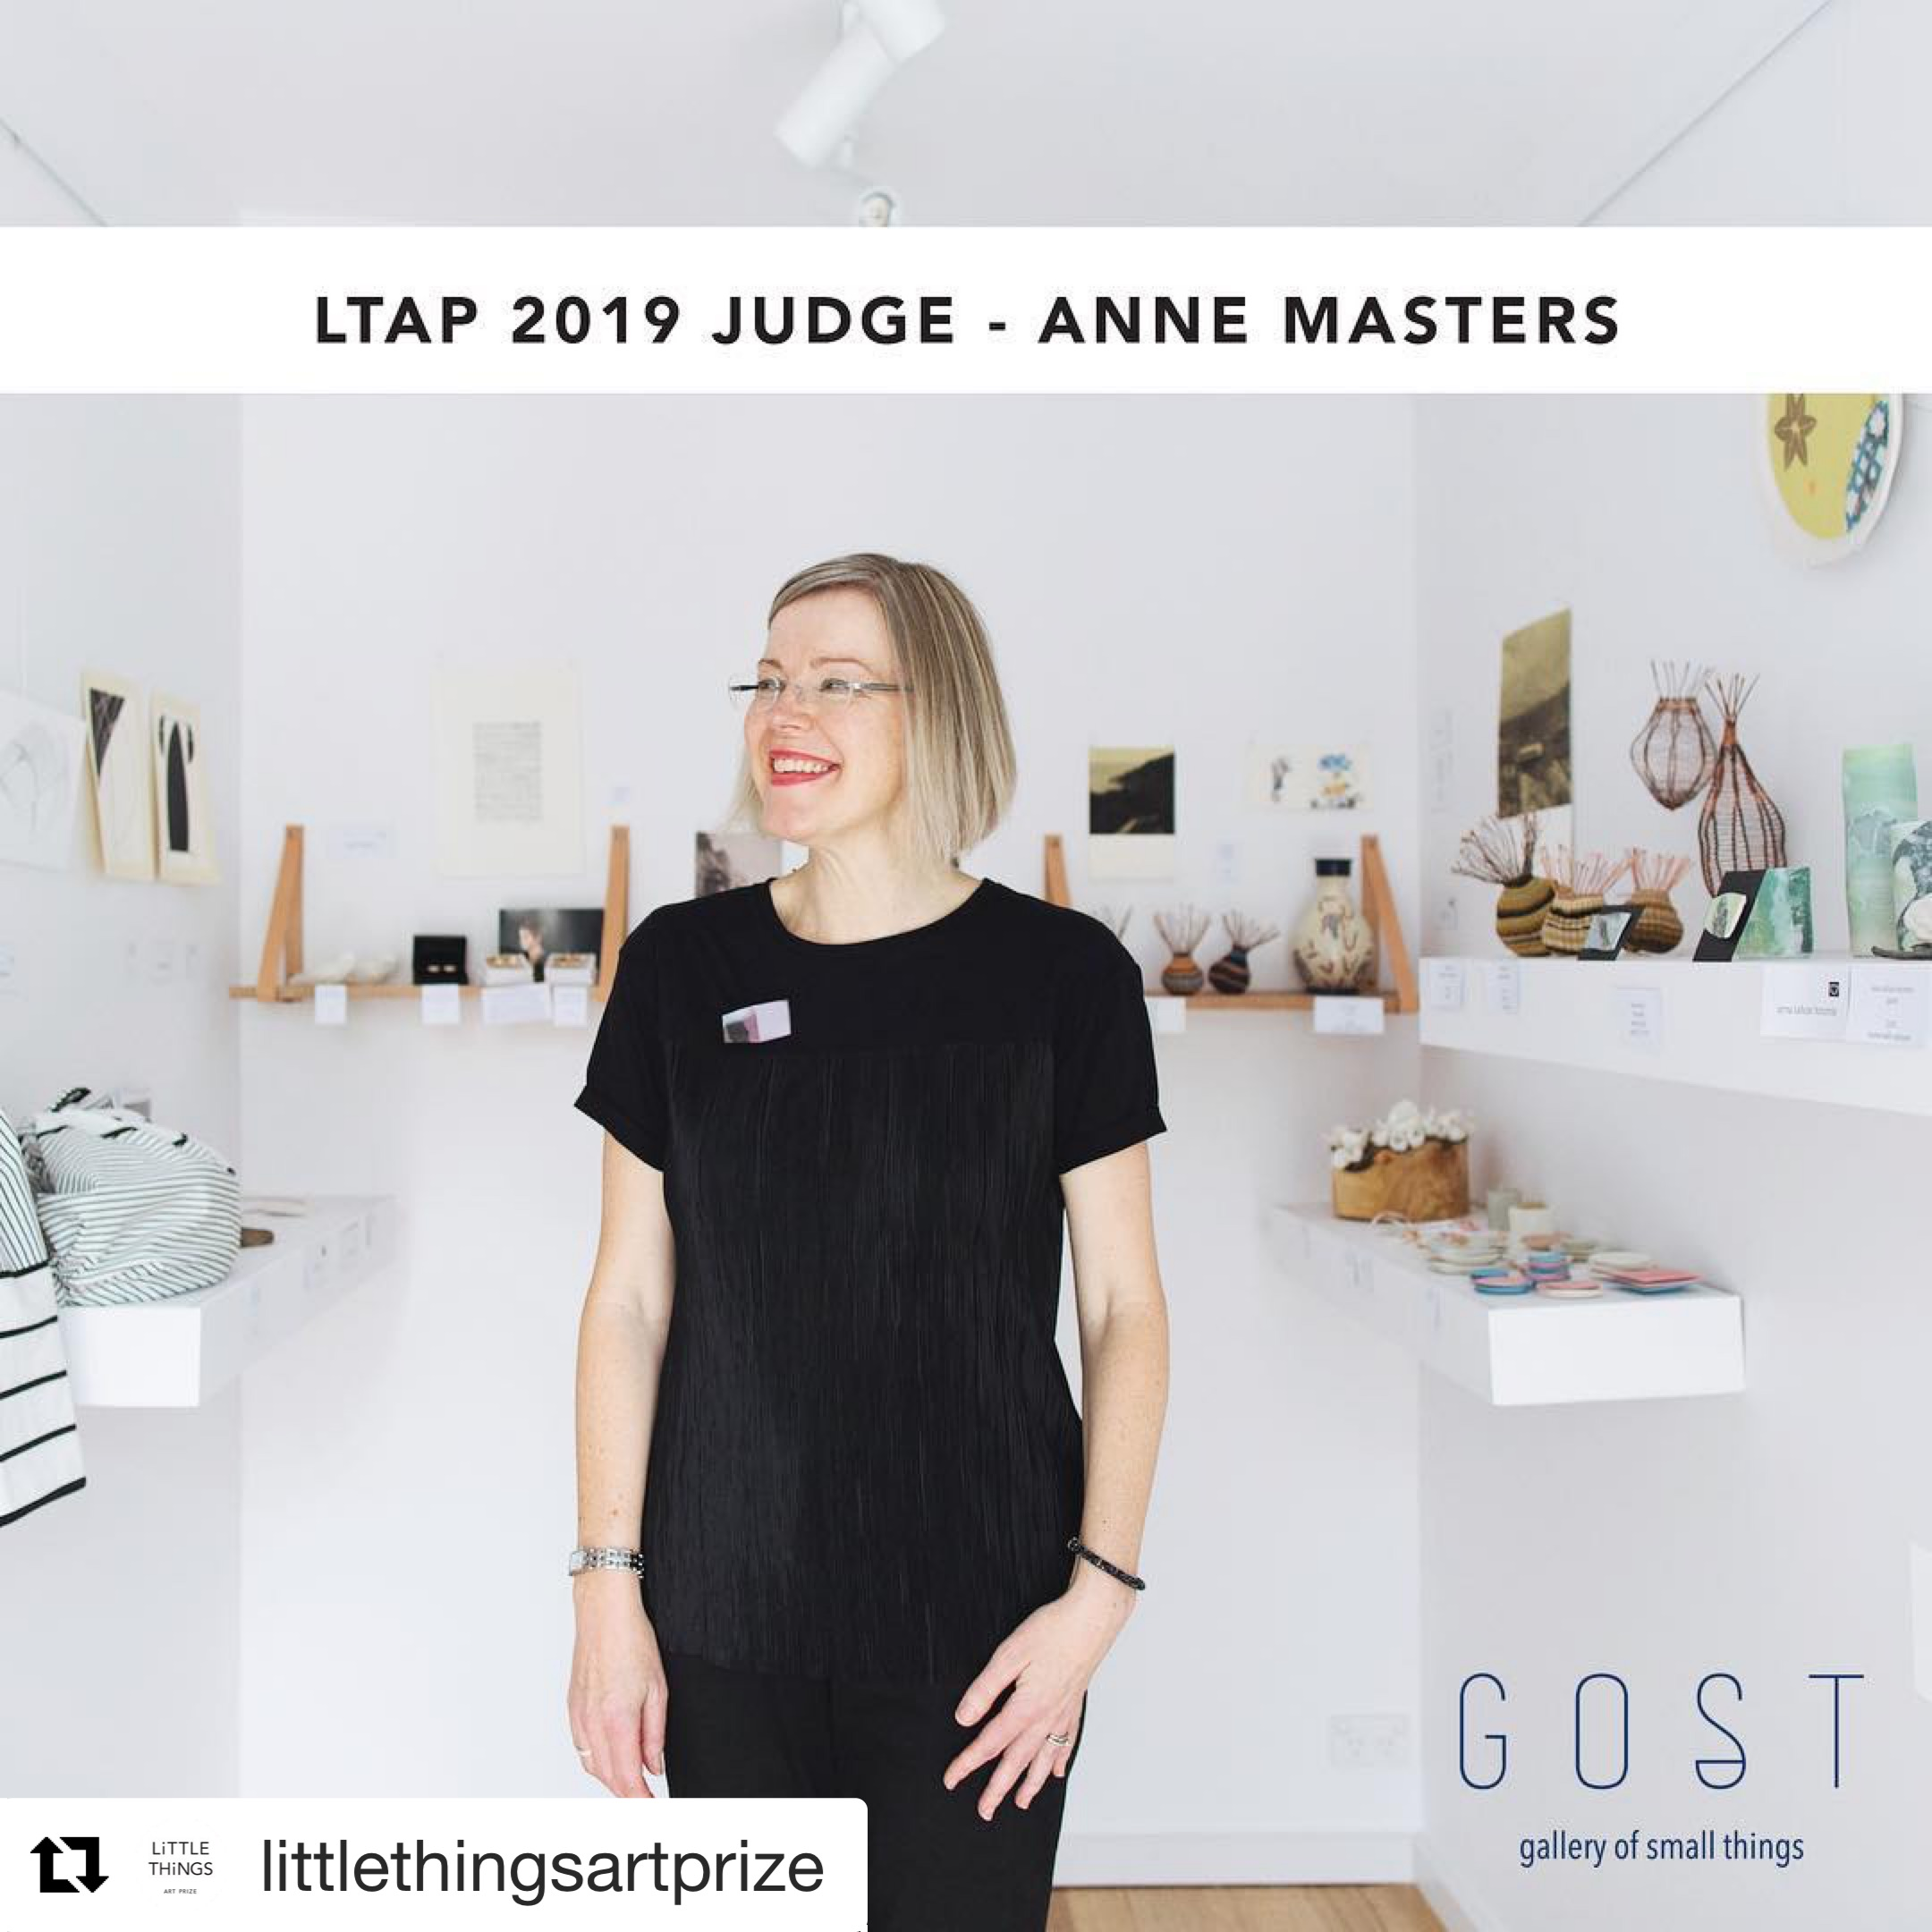 GOST_Anne Masters_Little Things Art Prize.jpg